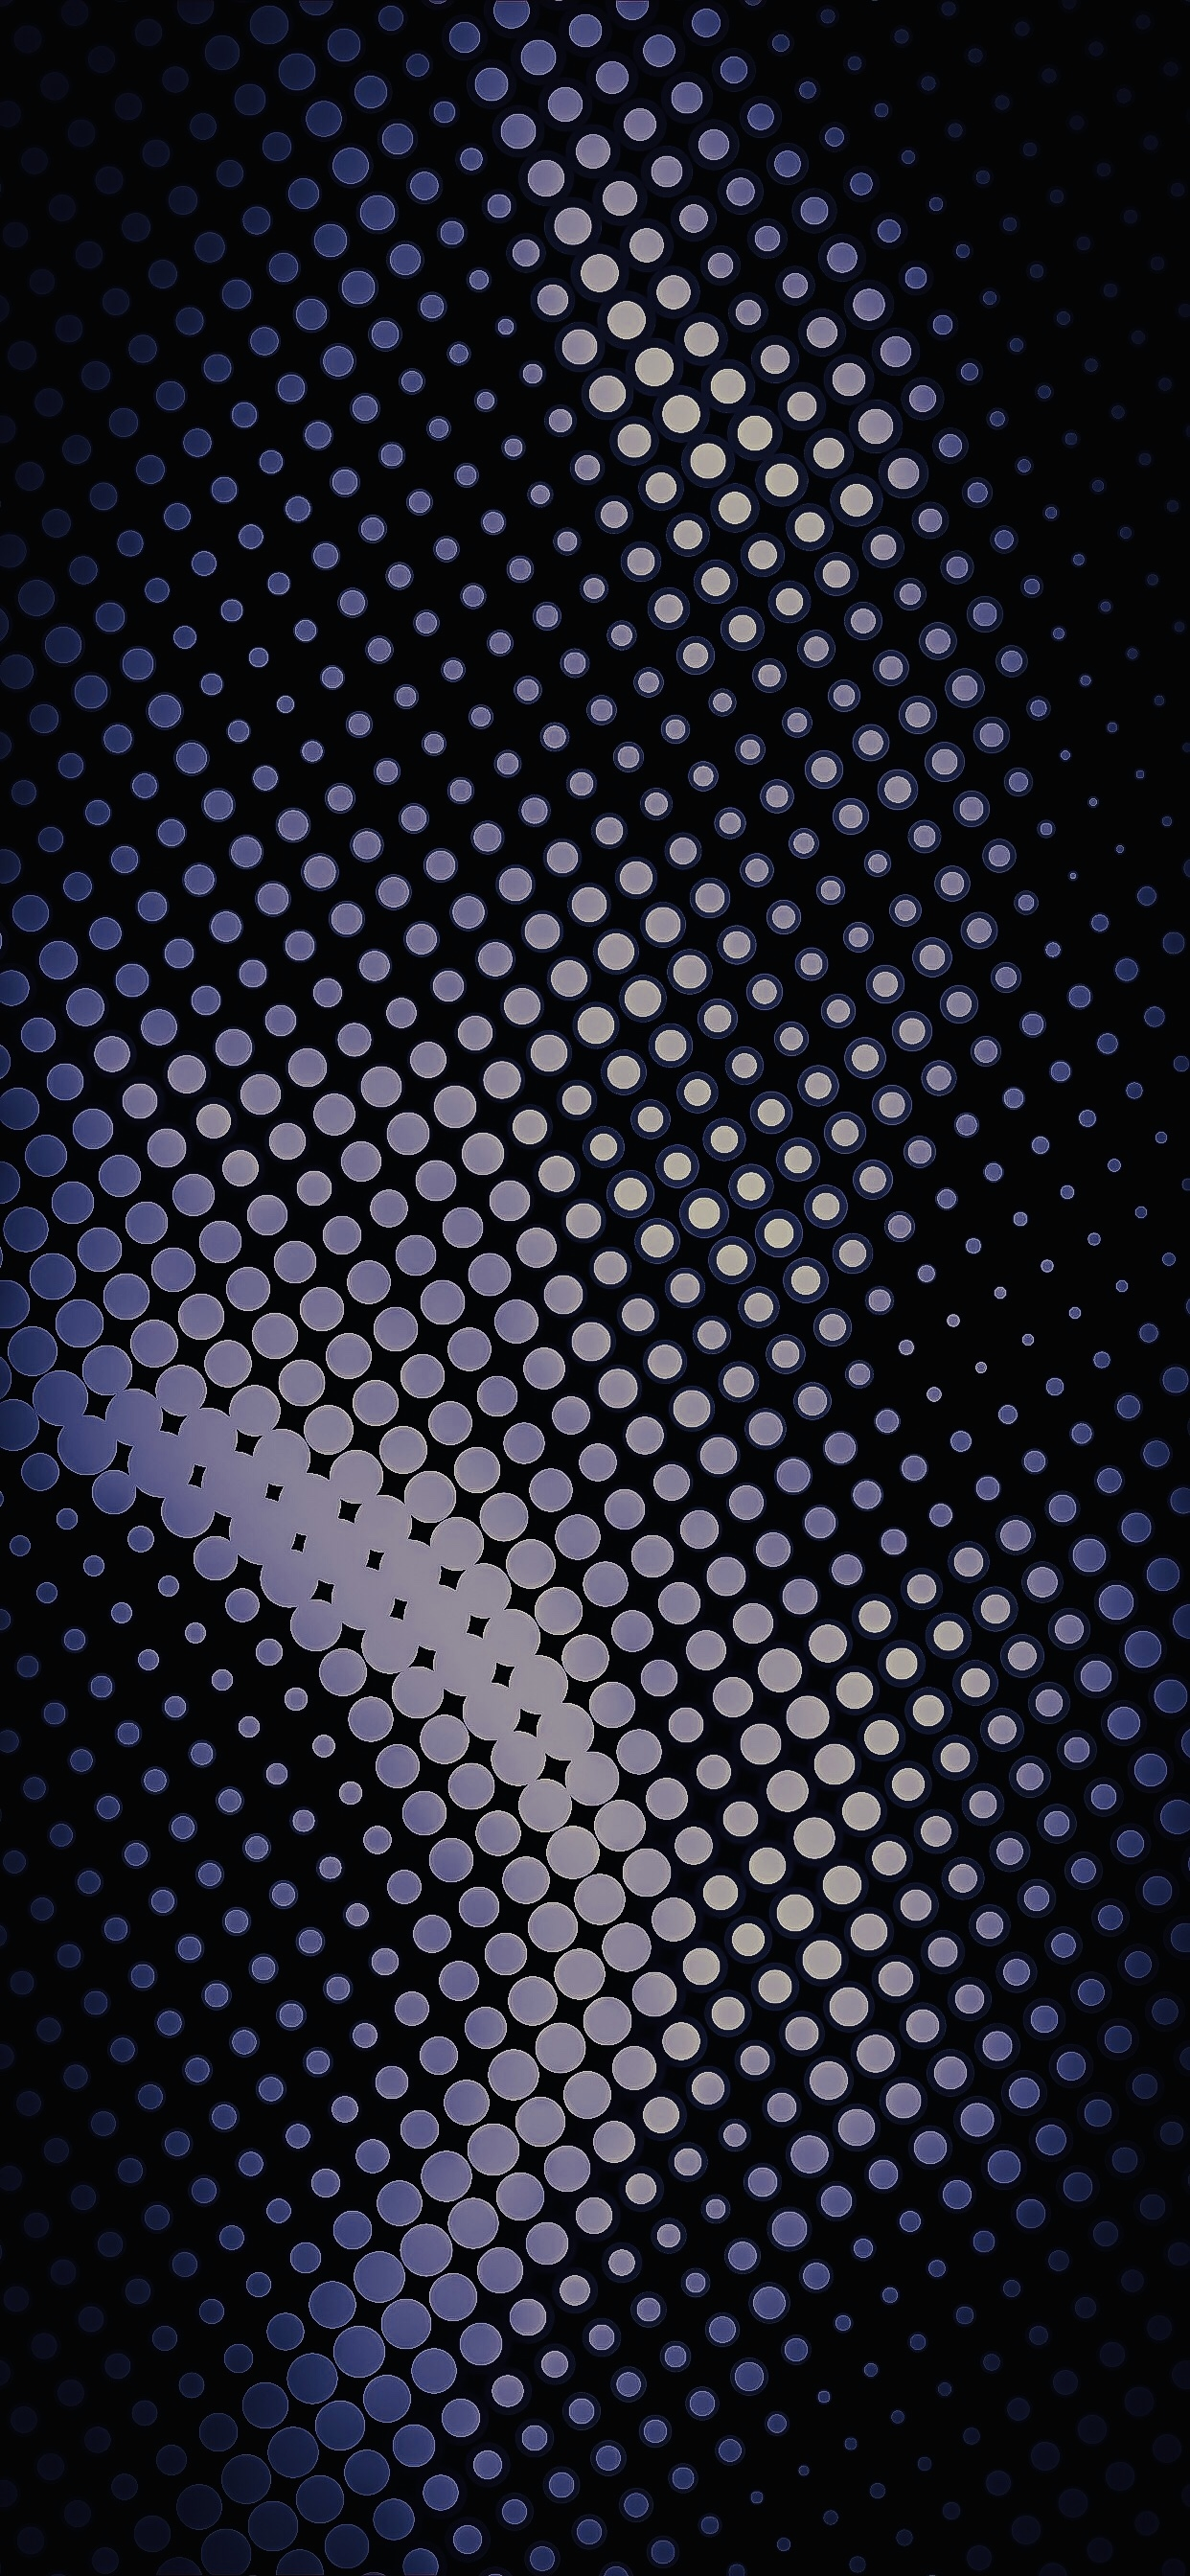 iPhone wallpaper dots grey Fonds d'écran iPhone du 08/02/2019